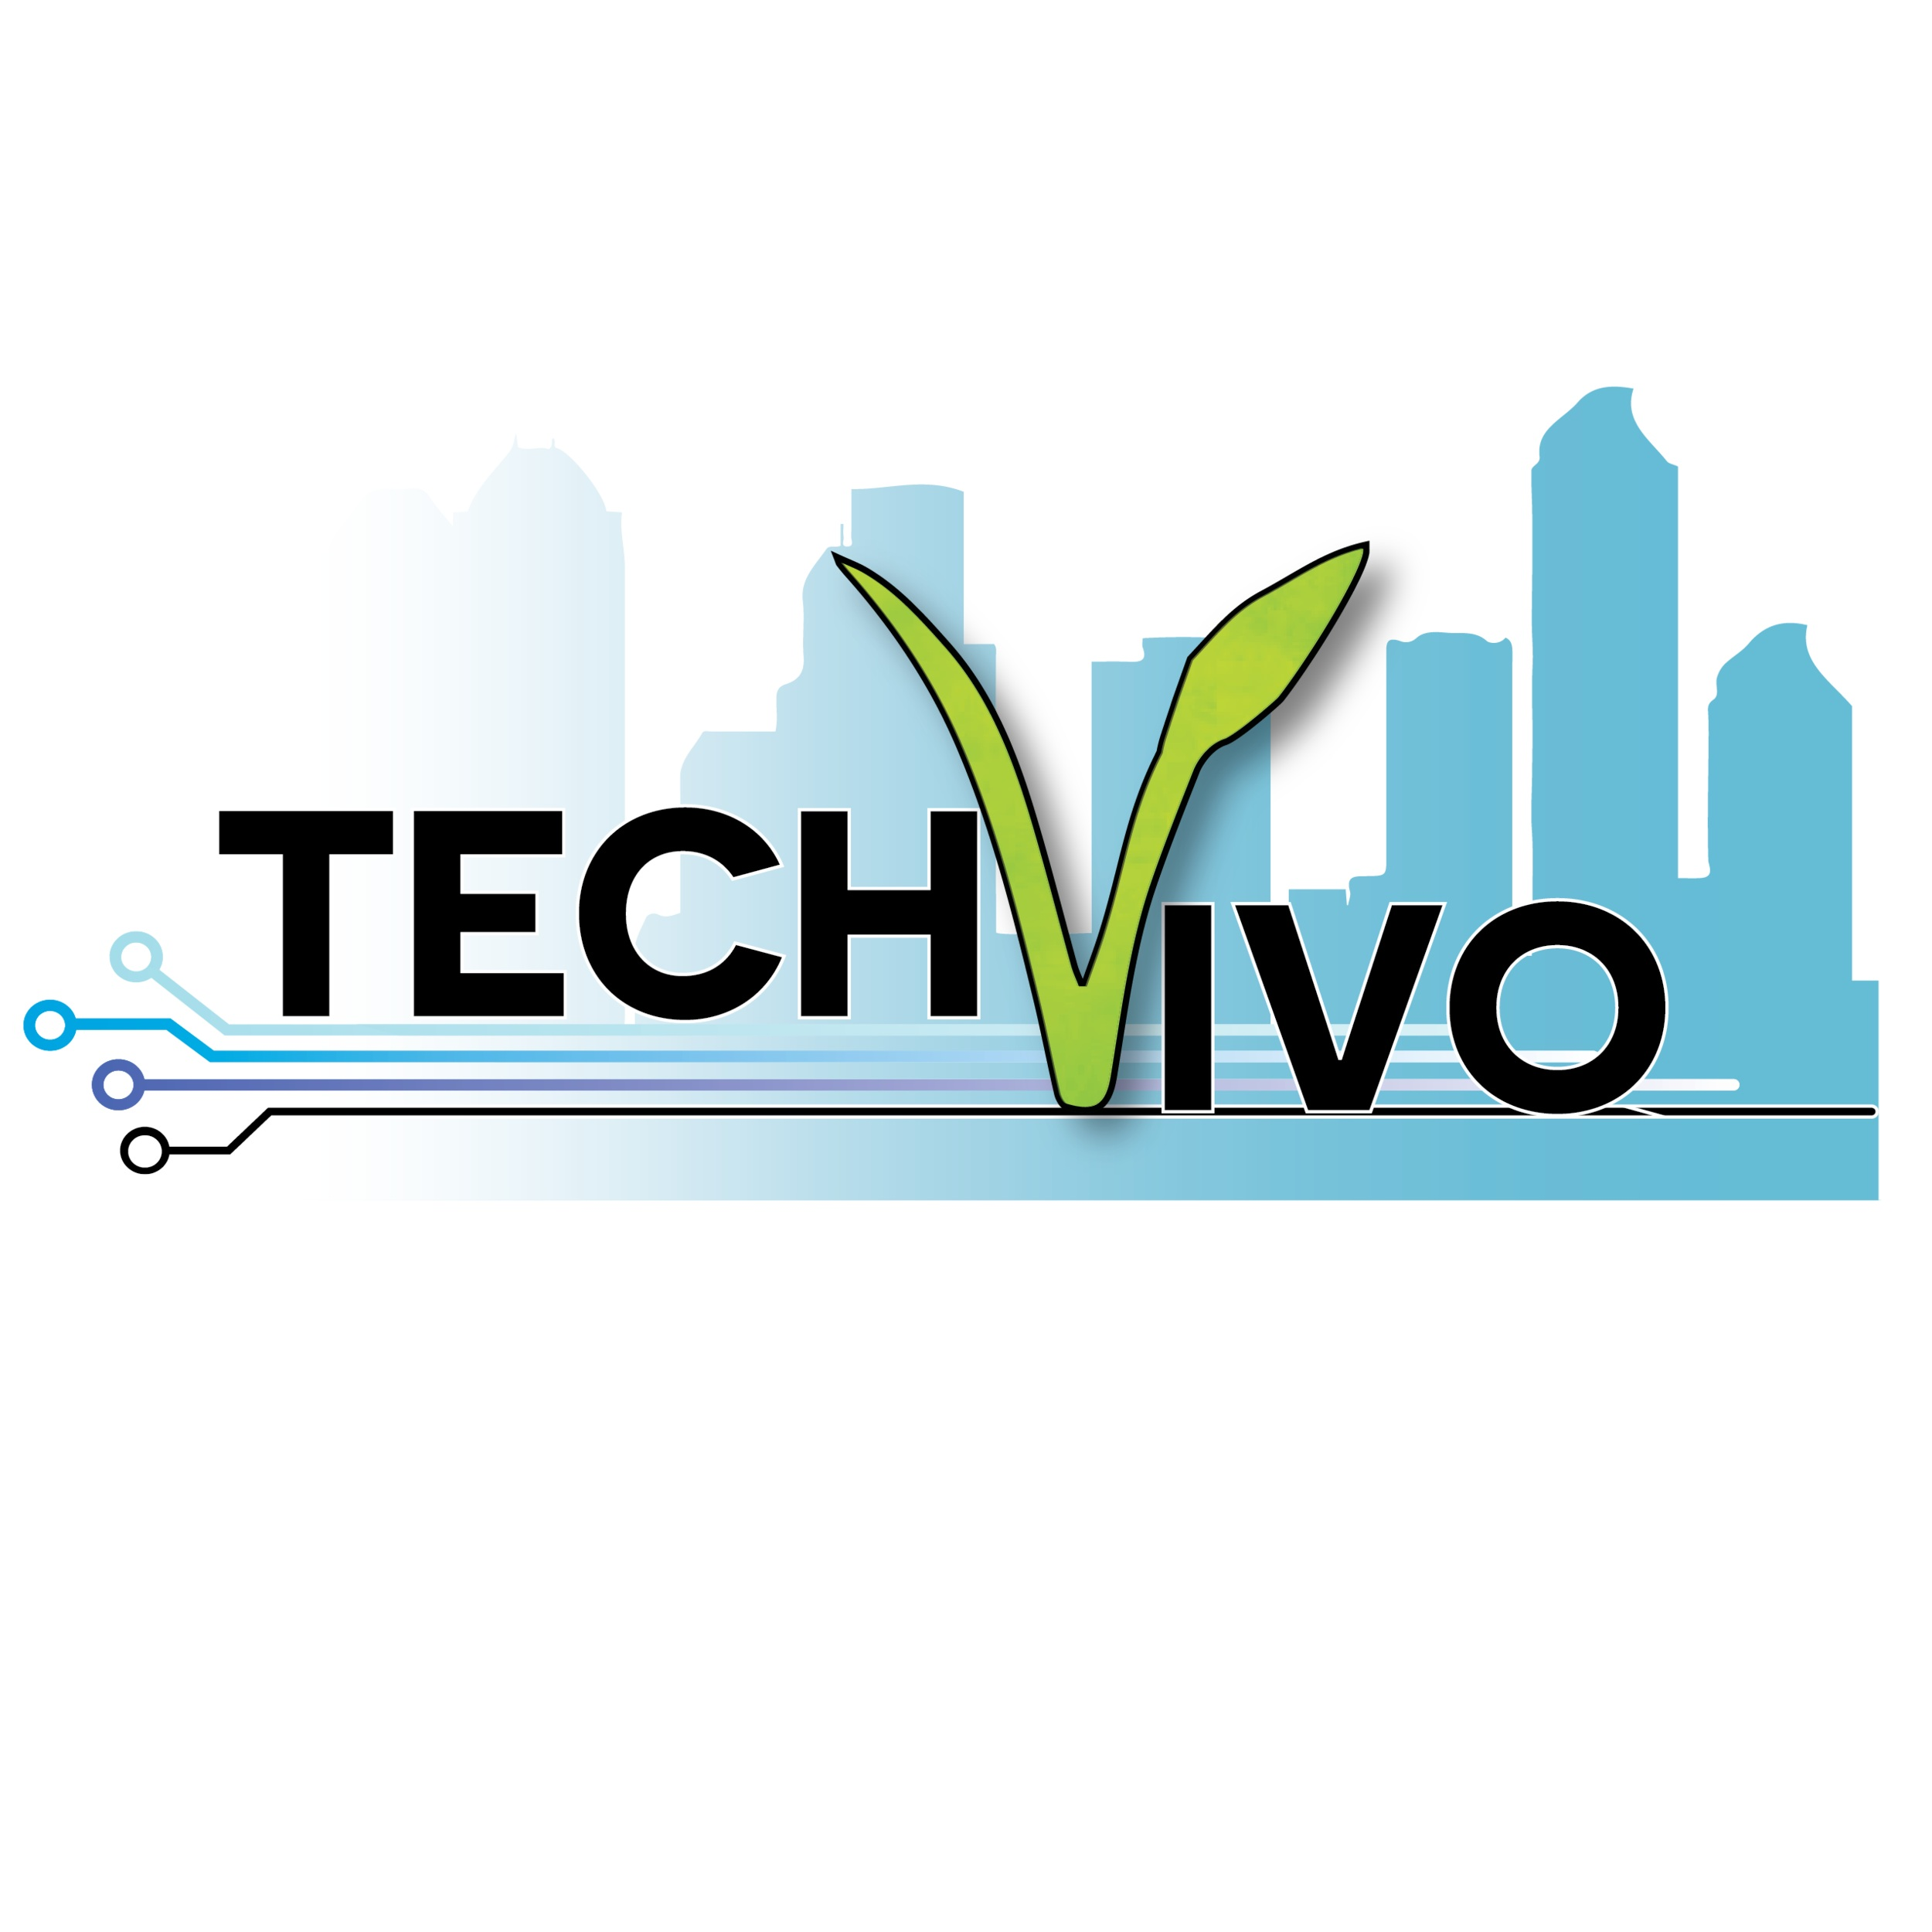 TECHVIVO - A non-for-profit organization was established for the purposes of creation & duplication of a neutral 5G Open Access, SMART community, using TwinHills as its living lab